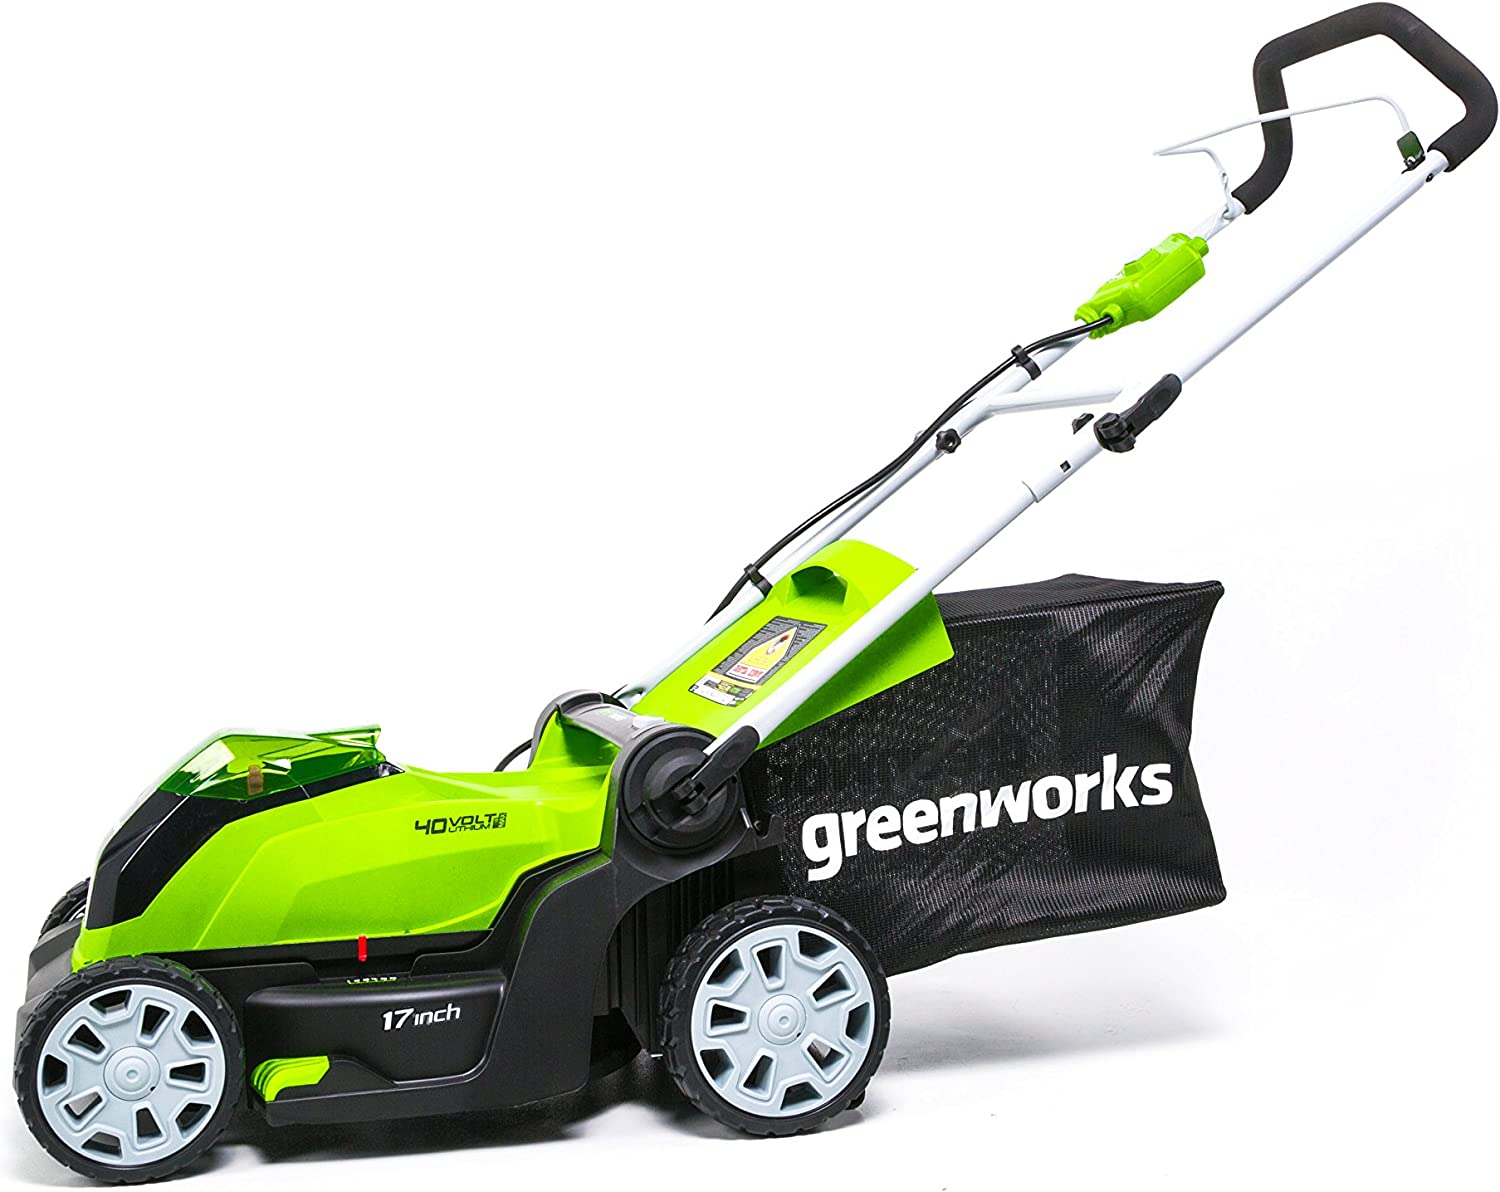 Amazon.com: Greenworks - Cortacésped eléctrico de 17.0 in ...